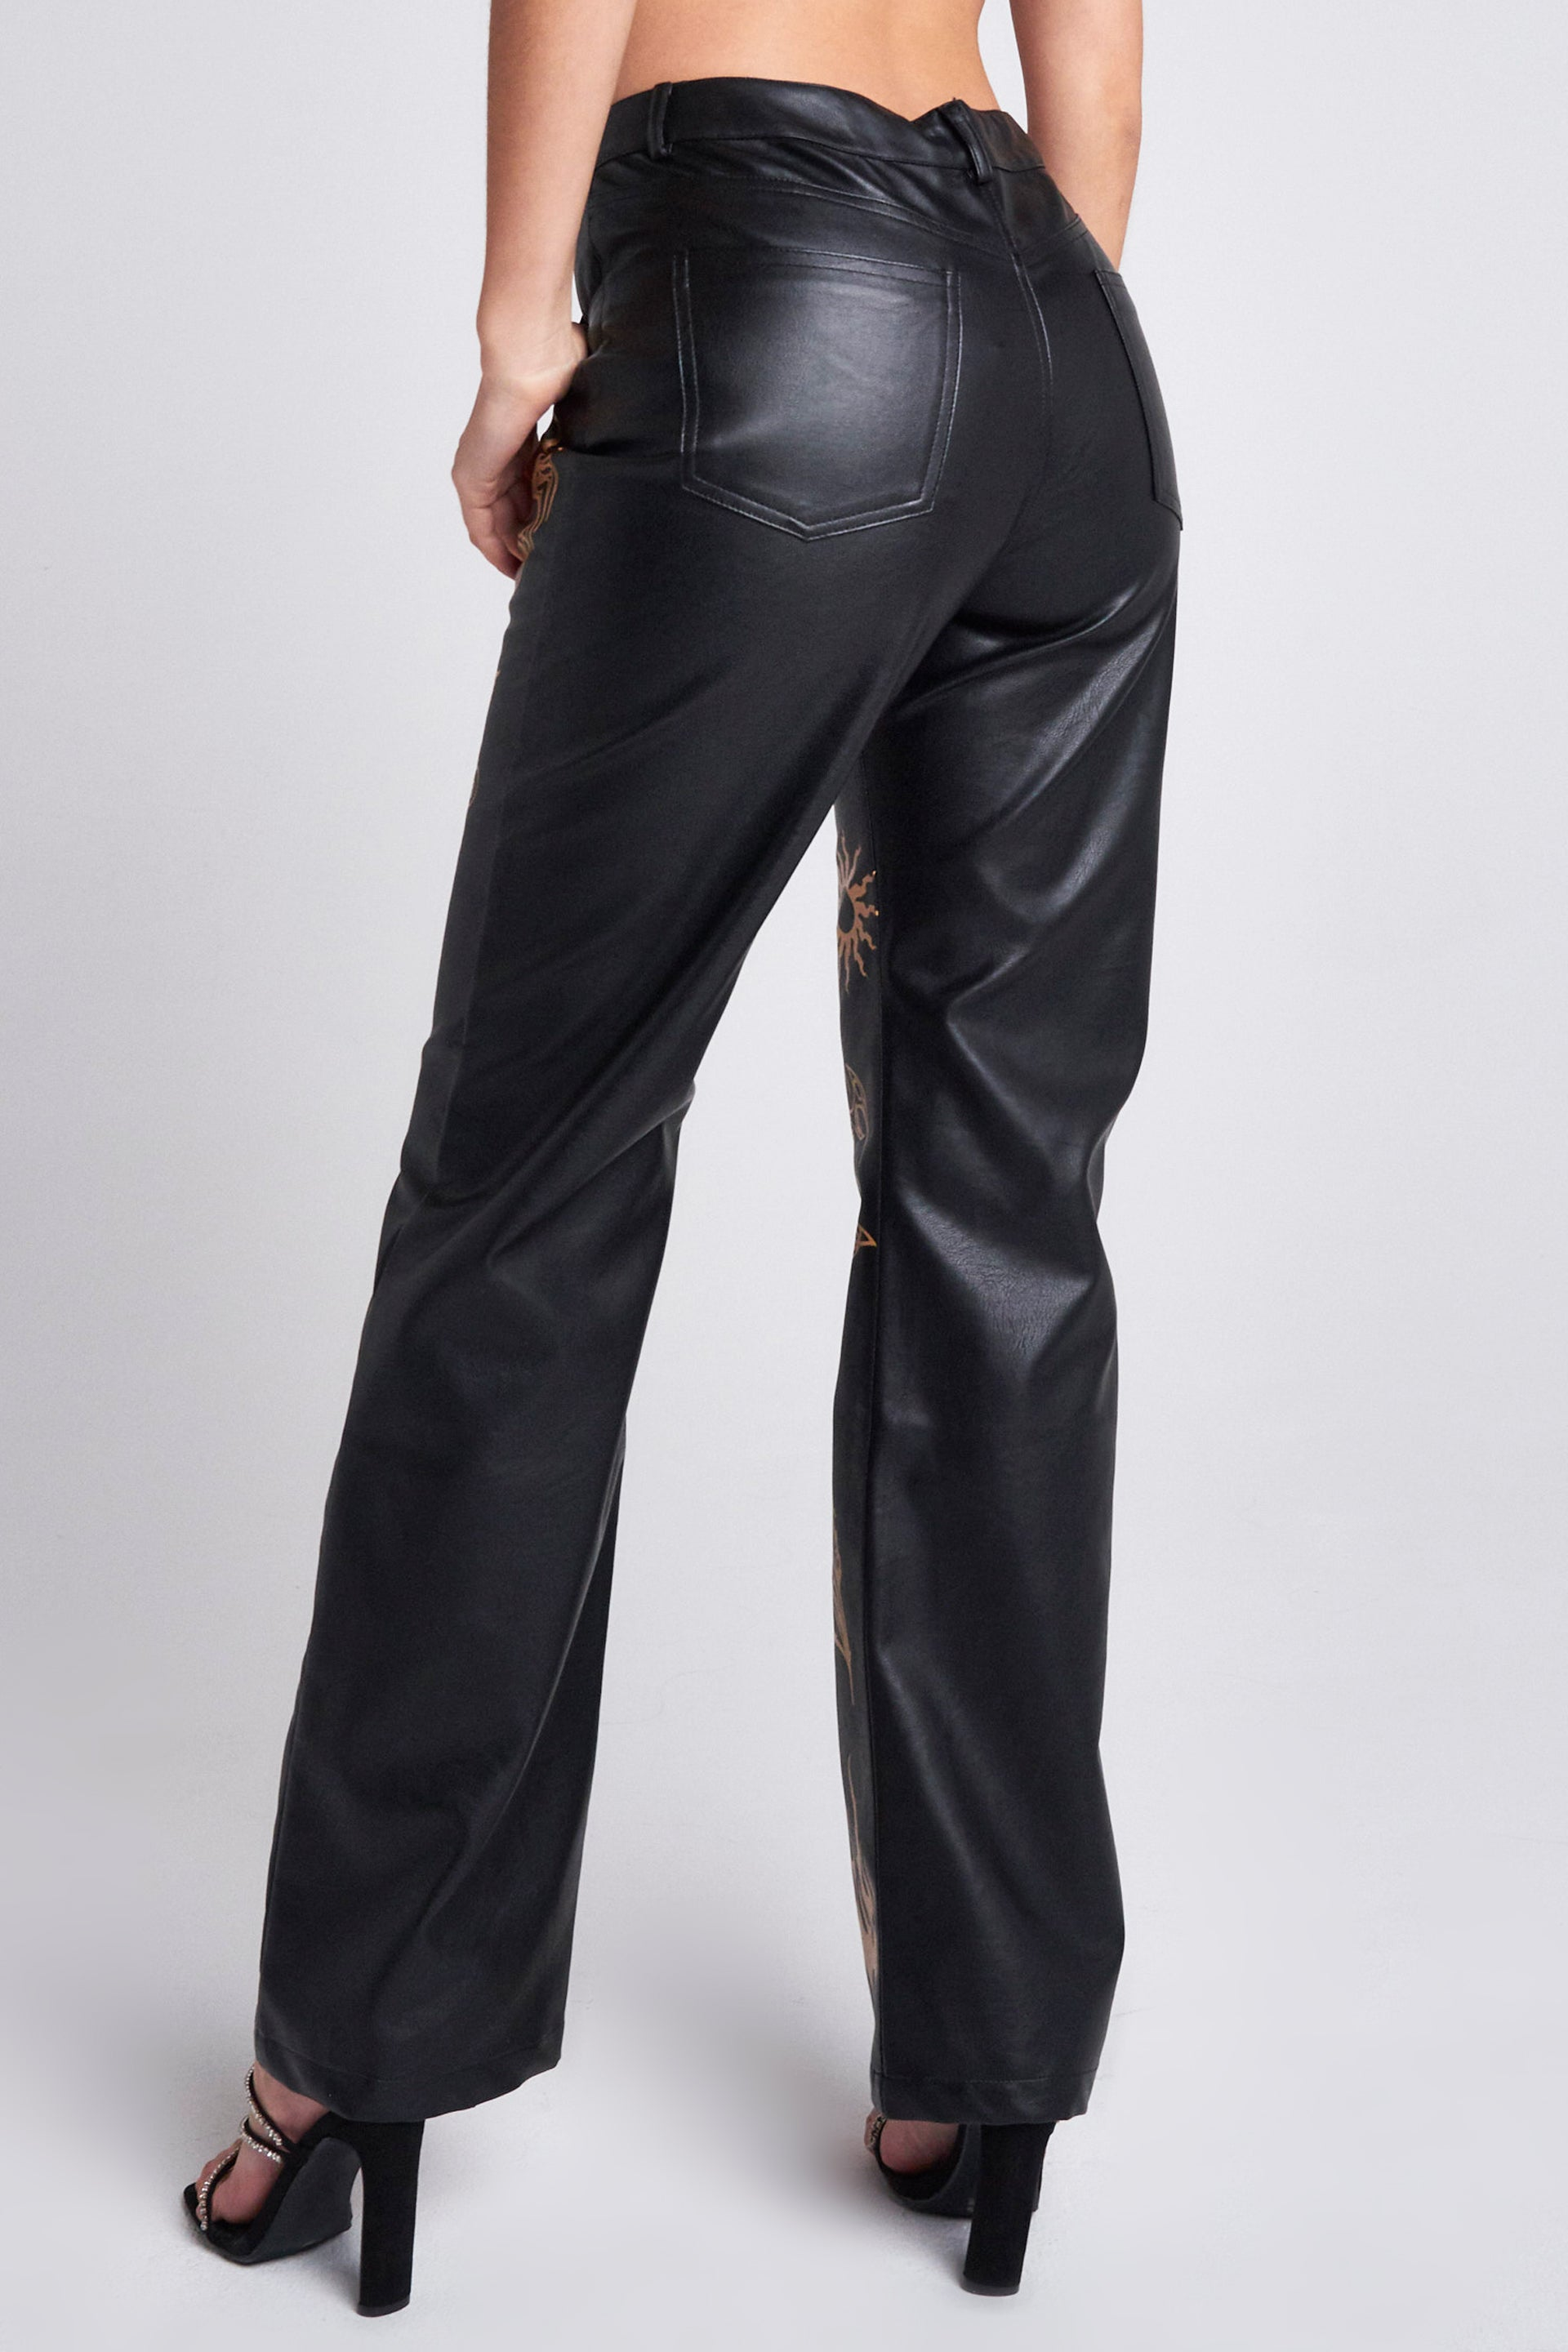 Black Vegan Leather Boyfriend Fit Trousers With Tan Tattoo Detail